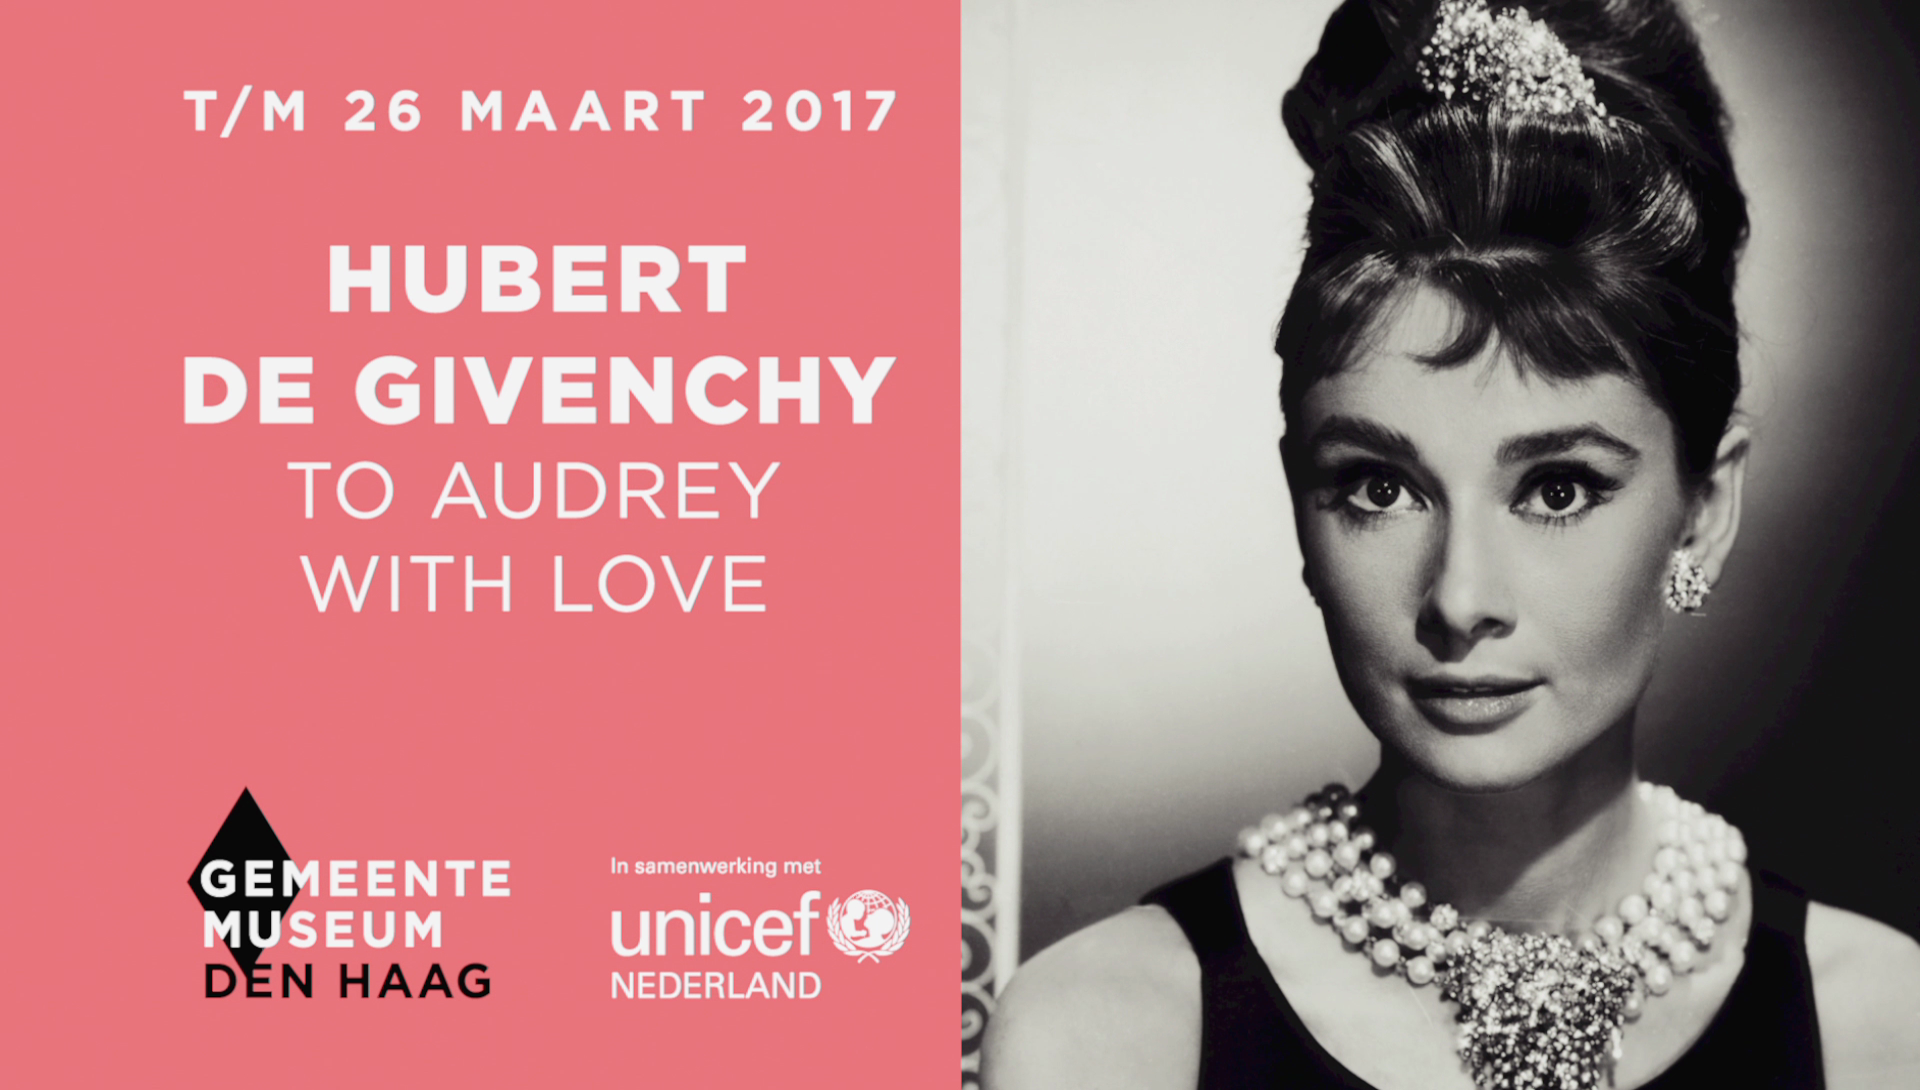 To Audrey With Love – Gemeentemuseum Den Haag